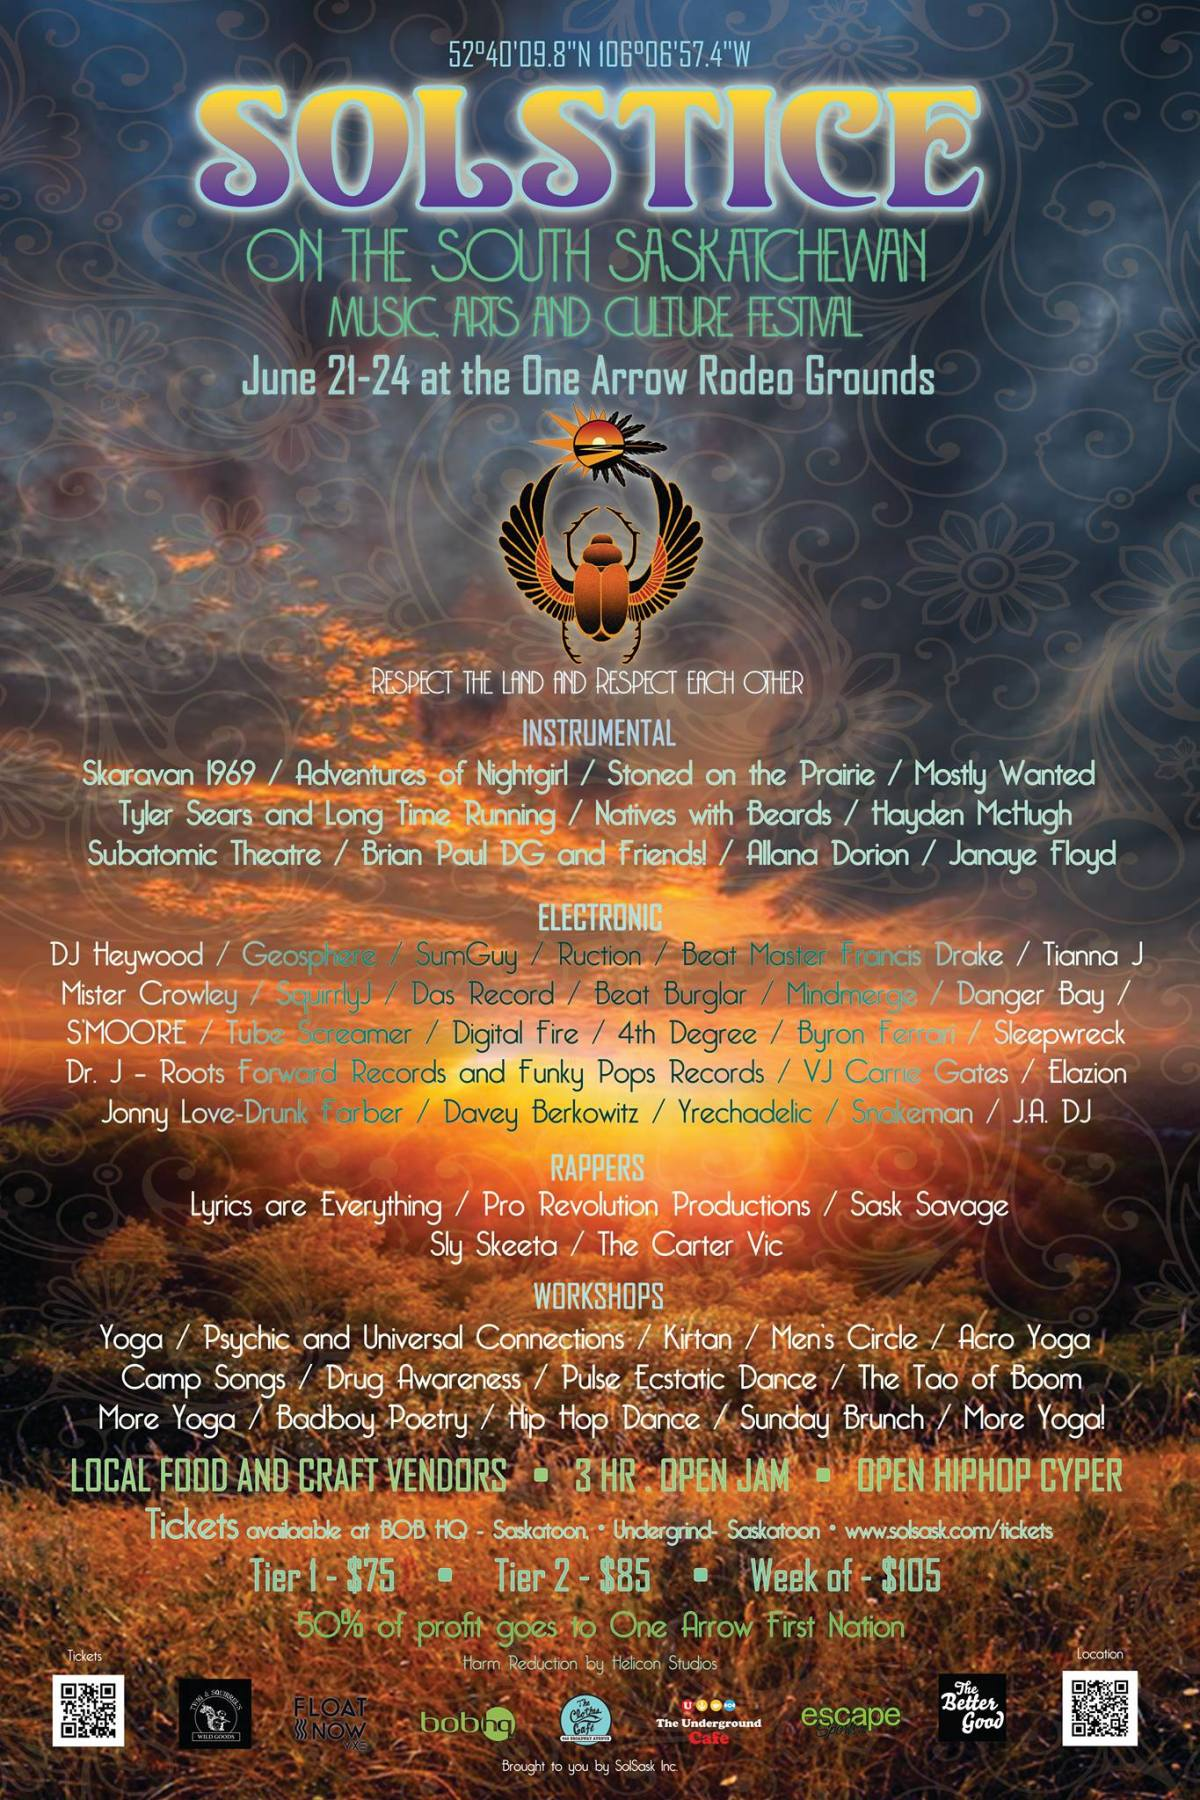 Solstice on the South Saskatchewan (Solsask Festival) - 2018 Poster